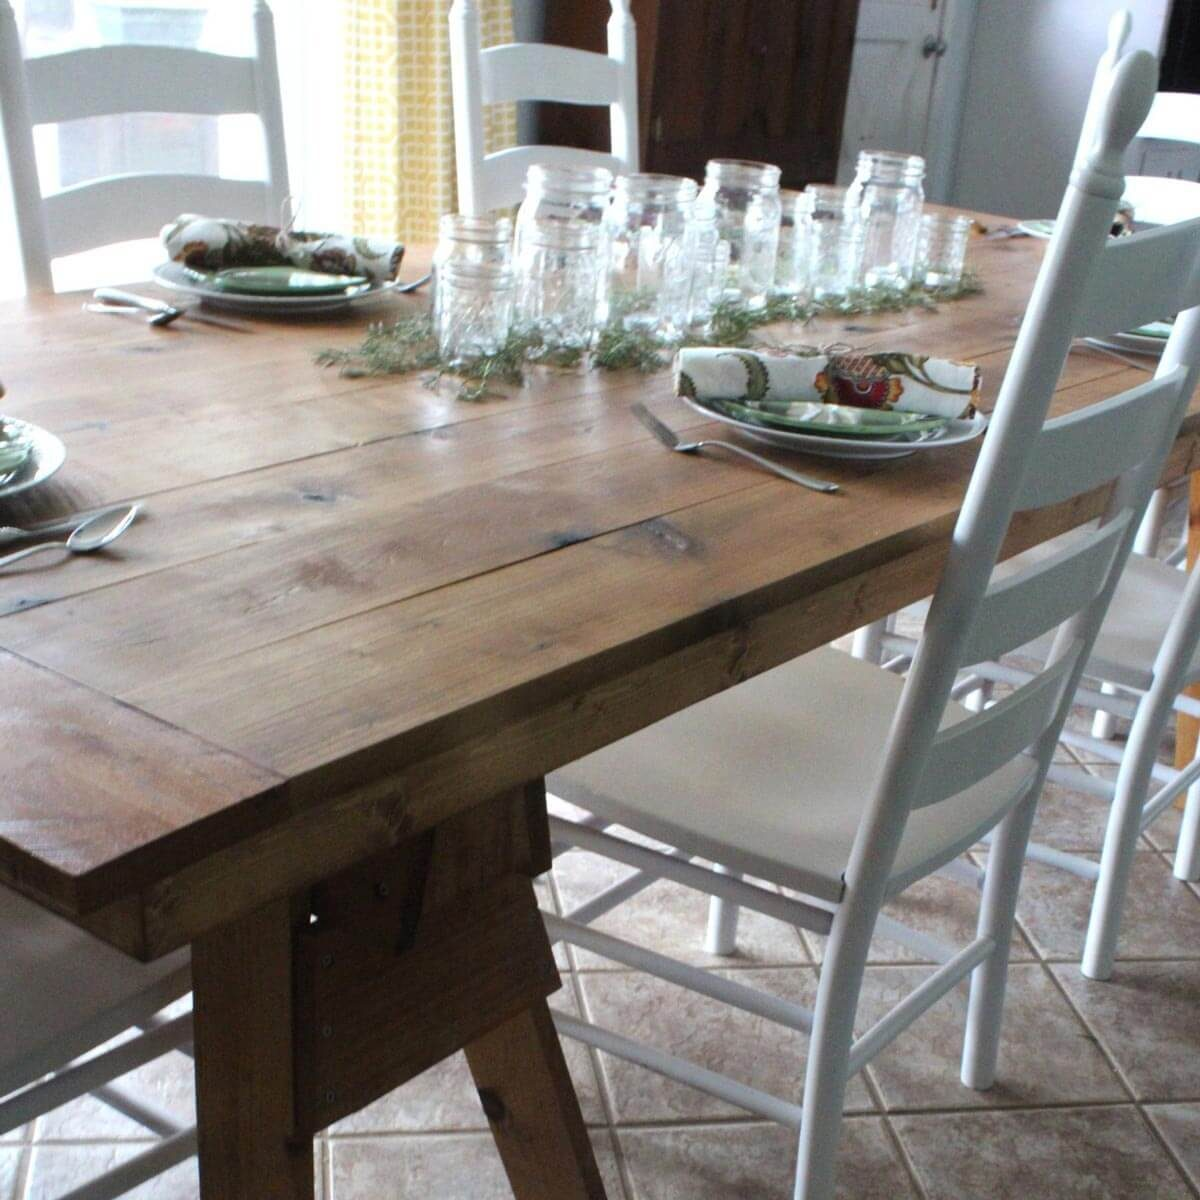 Build a Thanksgiving Table